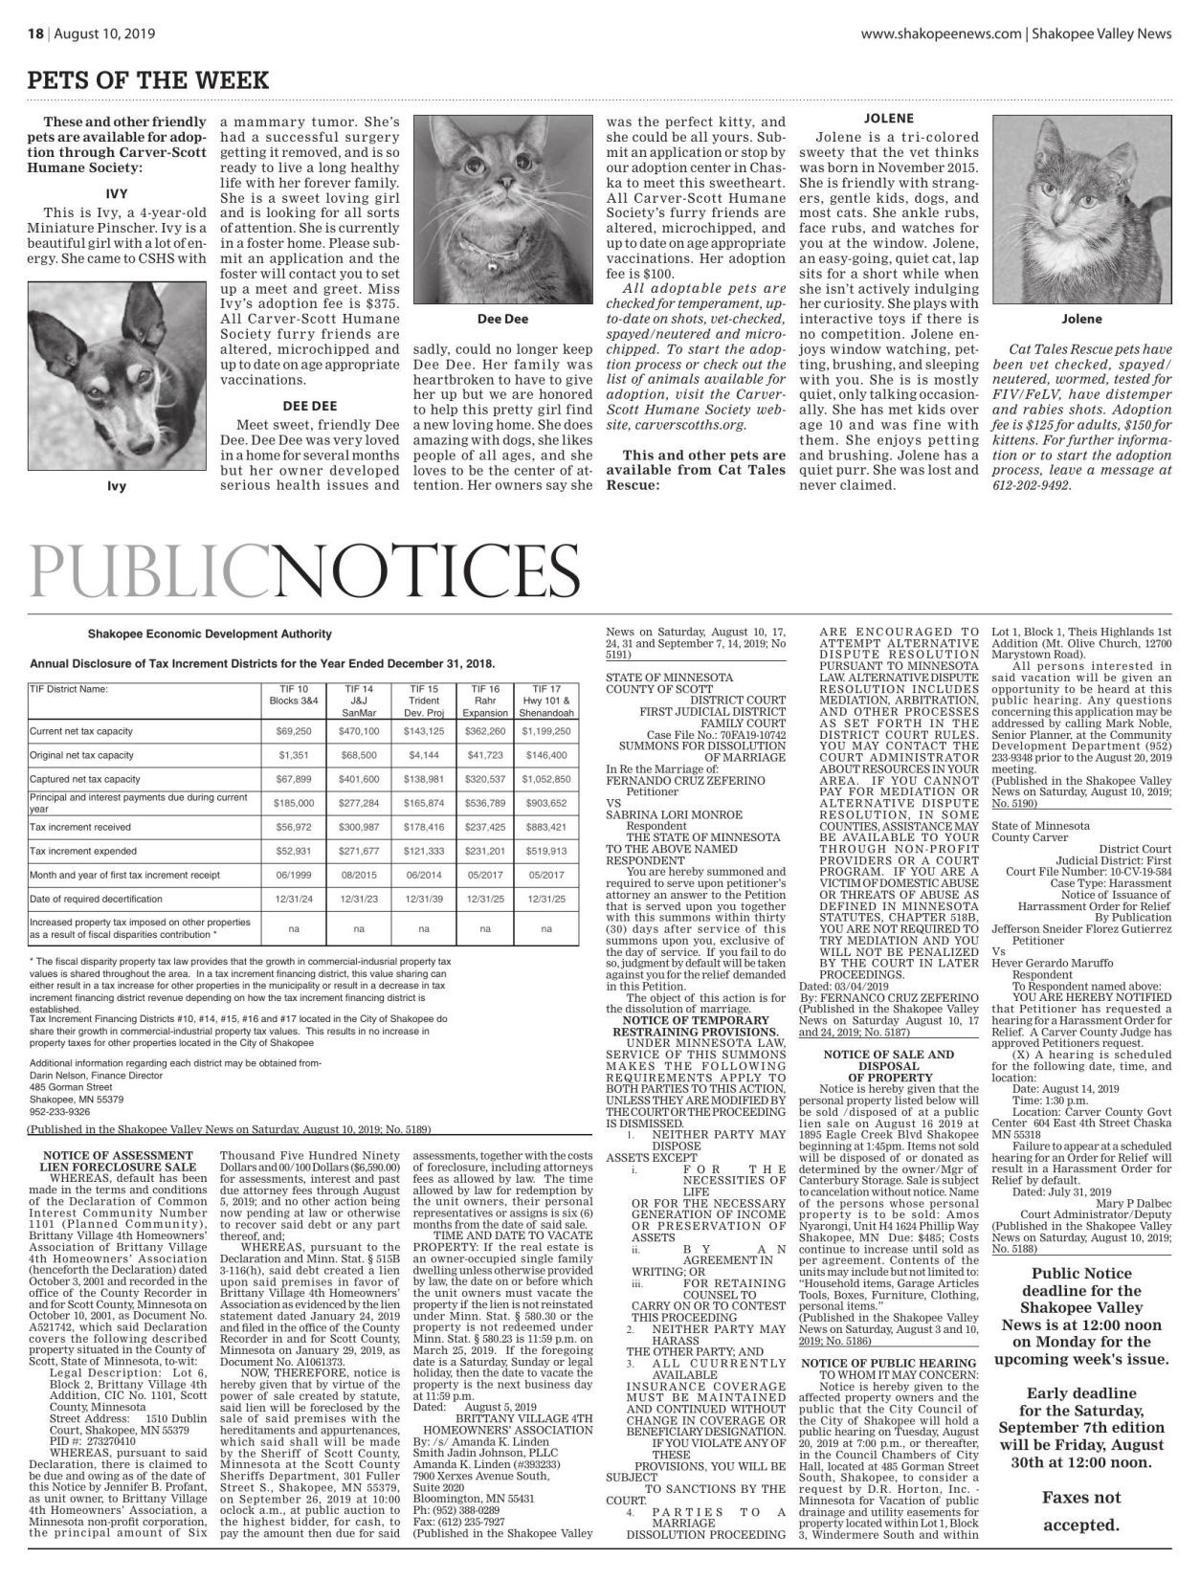 Public notices from the August 10, 2019 Shakopee Valley News